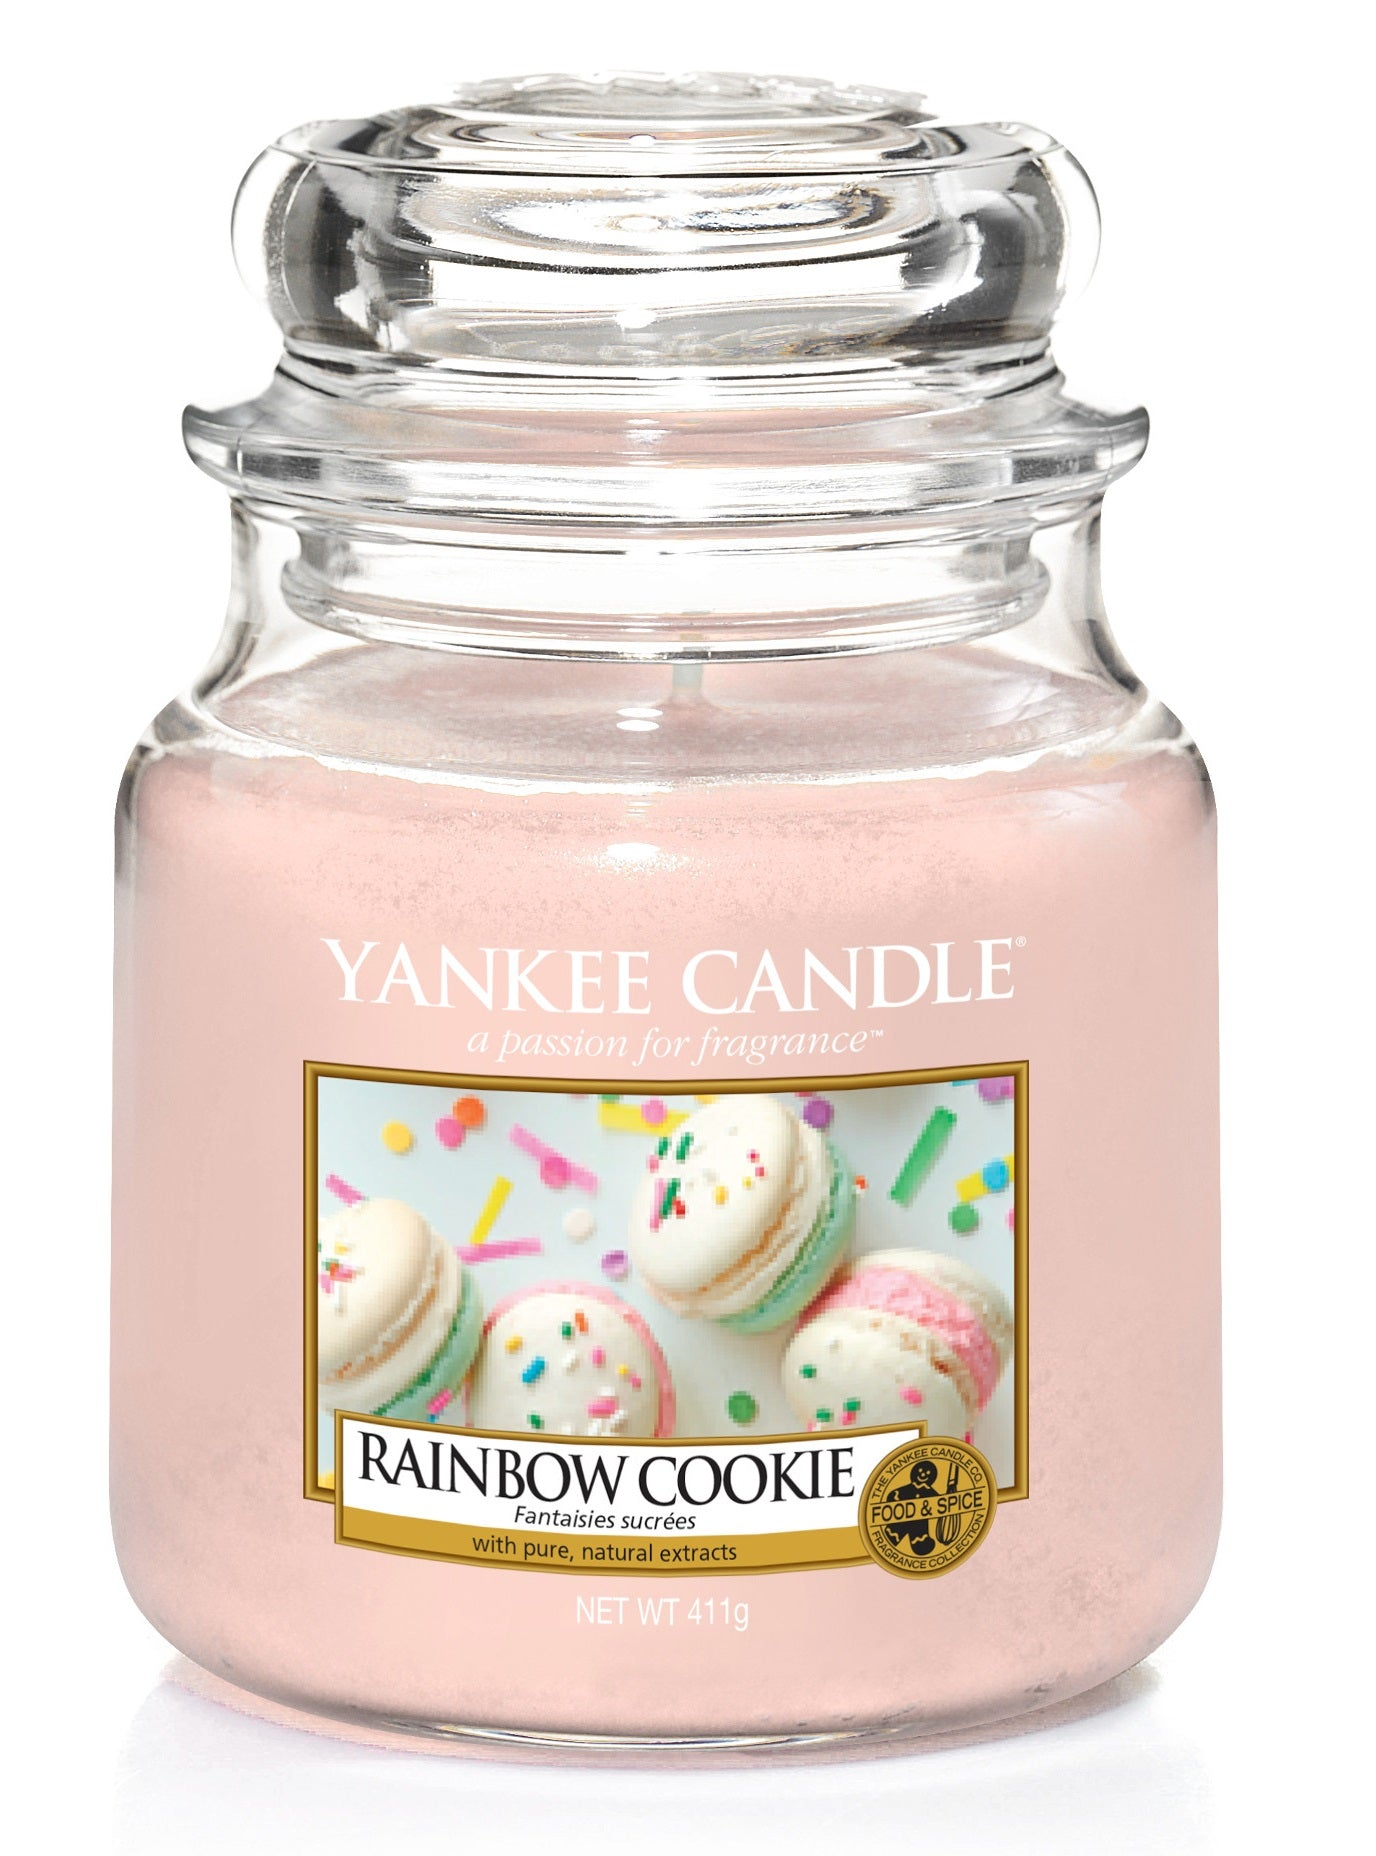 RAINBOW COOKIE -Yankee Candle- Giara Media